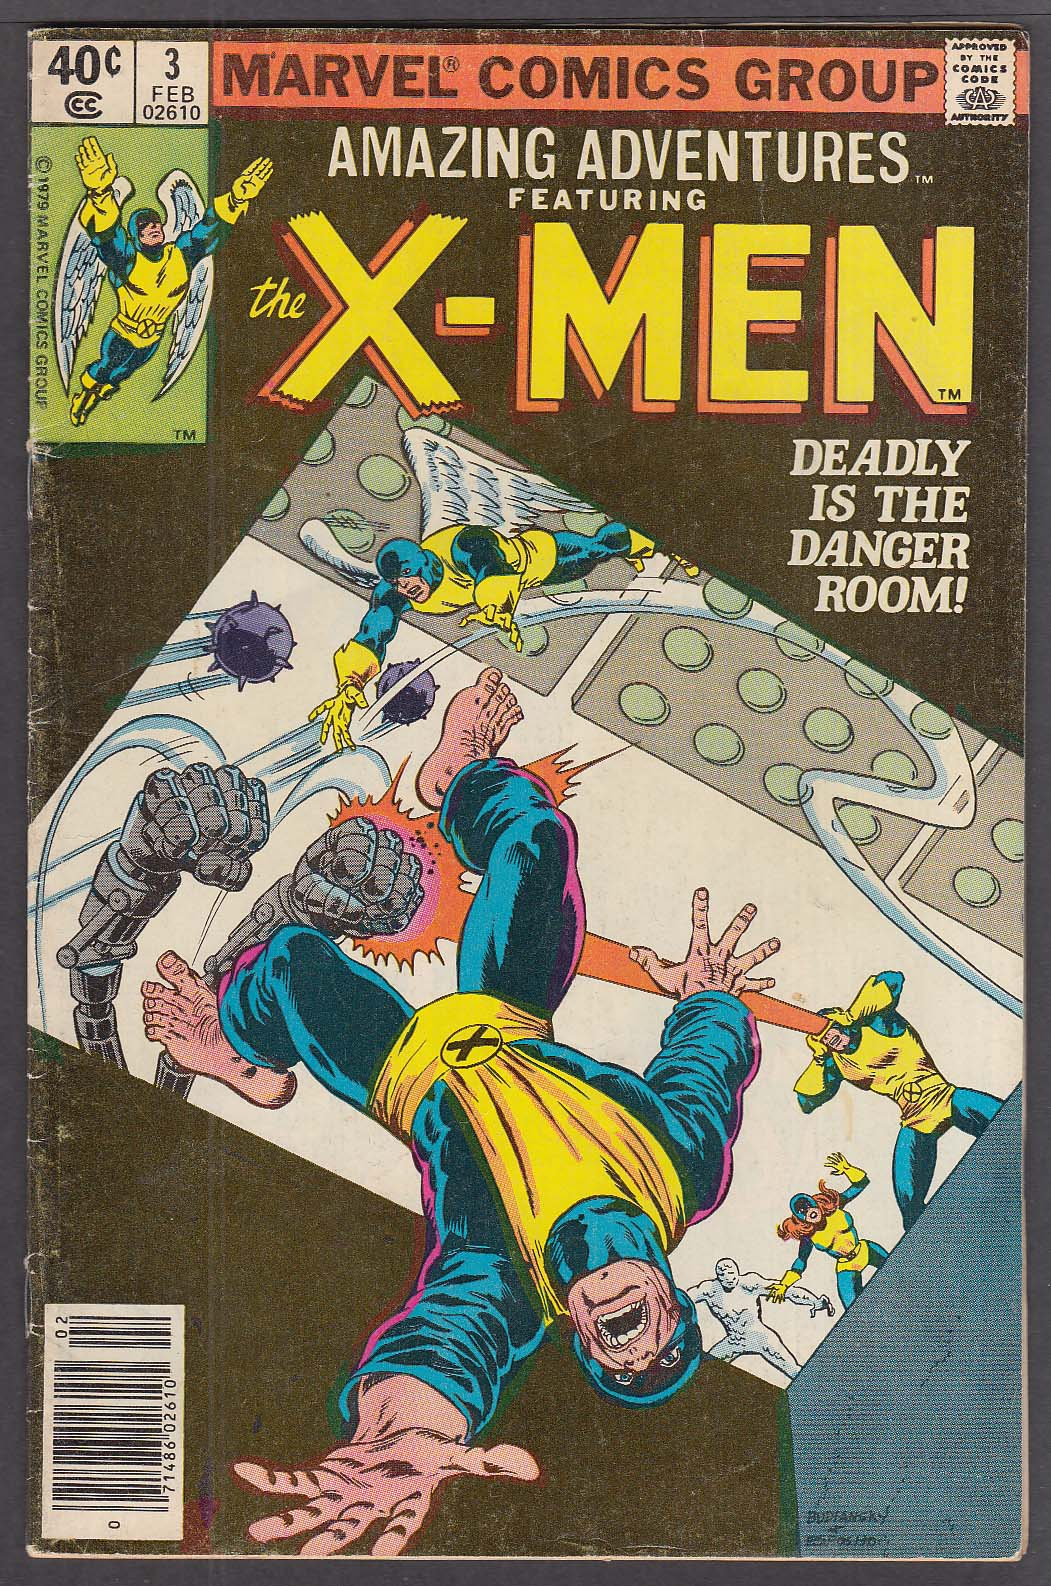 AMAZING ADVENTURES Vol 2 #3 featuring the X-MEN Marvel comic book 2/1980